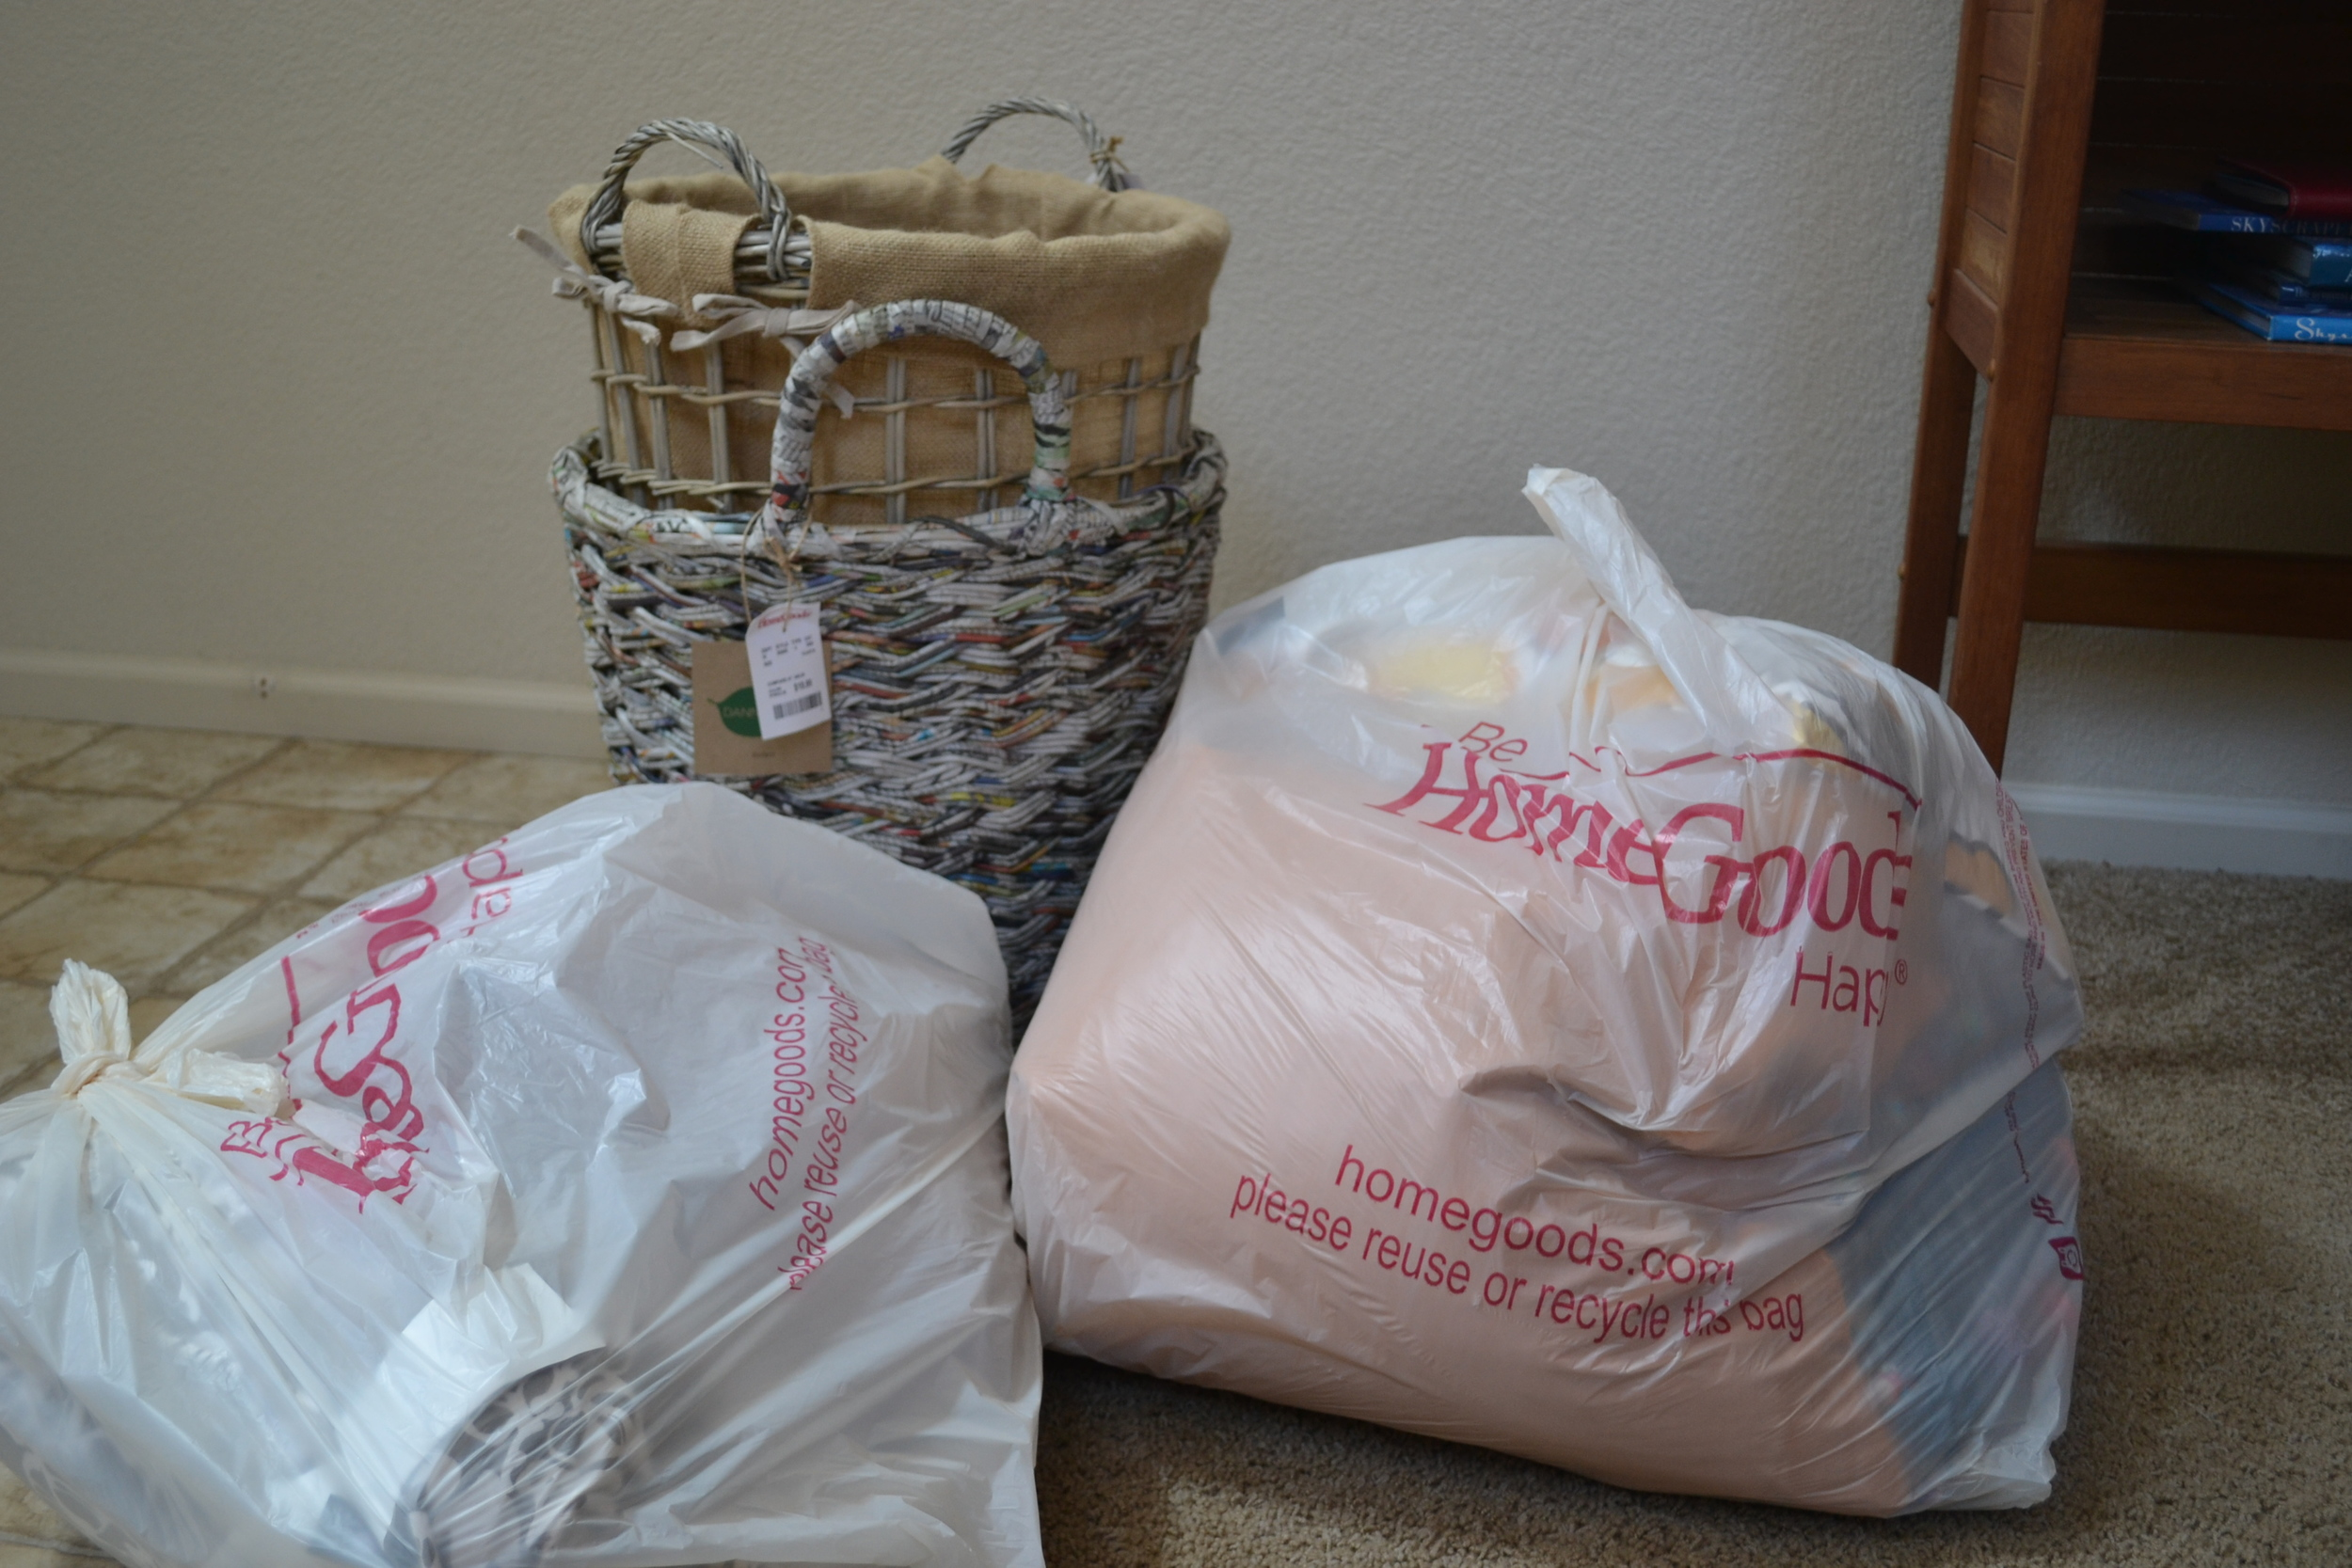 A bag of items from Home Goods